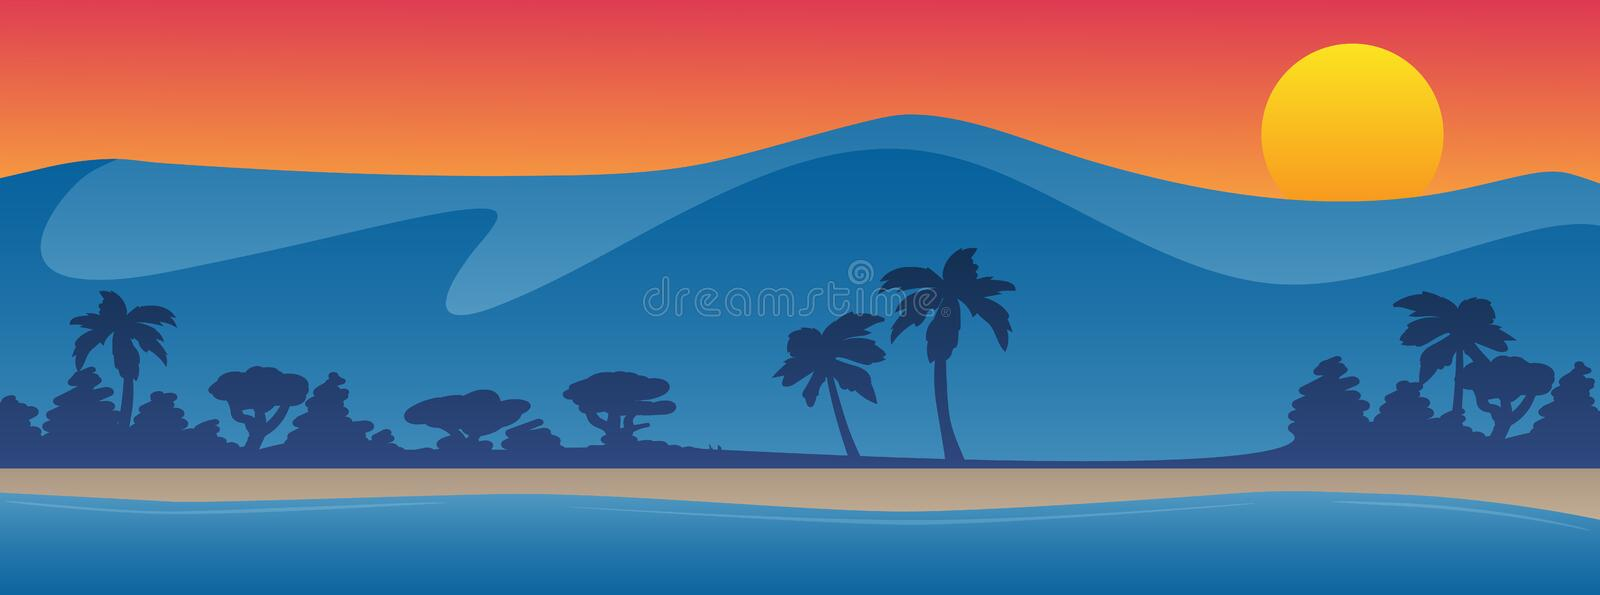 Mountains with beach shoreline summer scene background vector illustration stock images